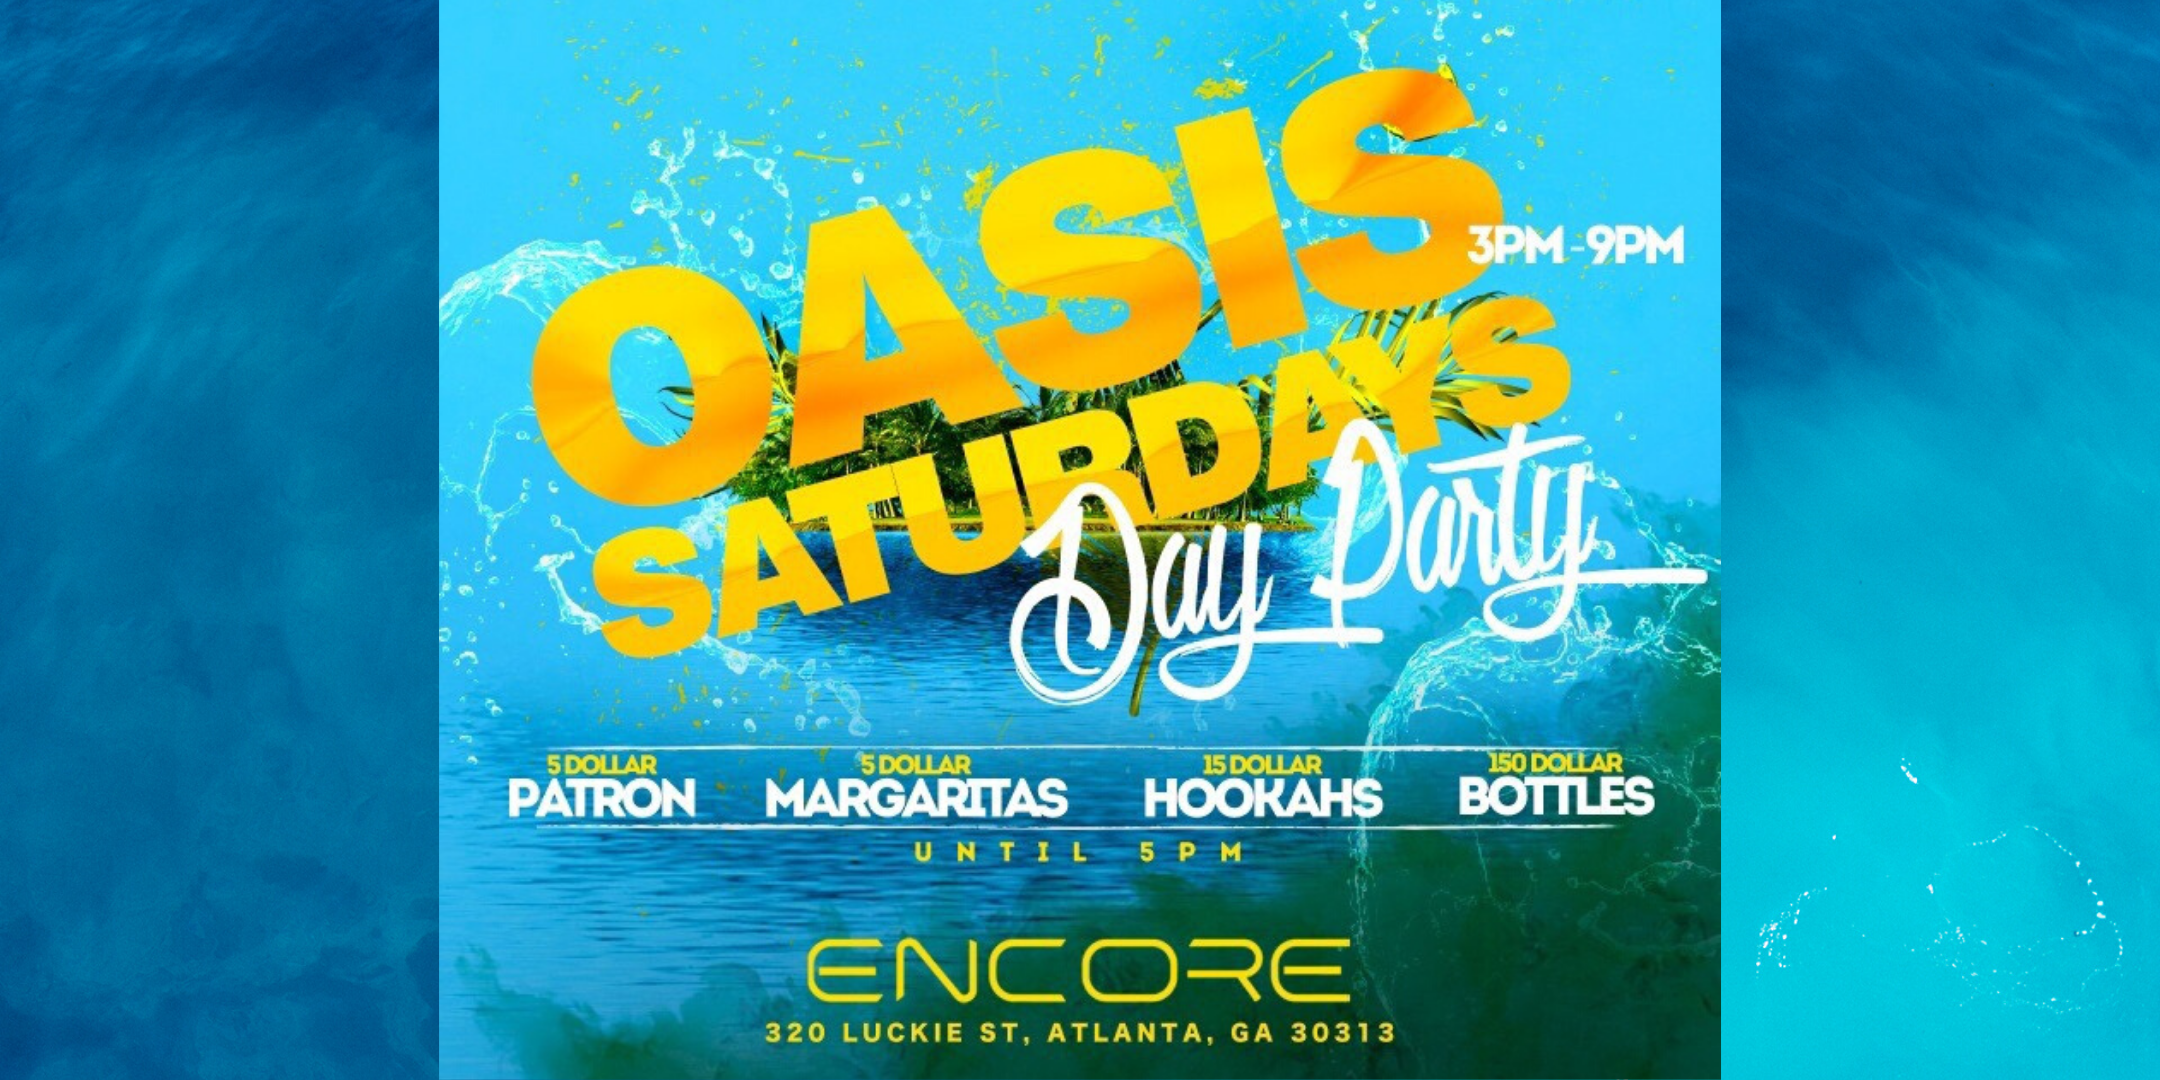 Oasis R&B Day Party @Encoreatl - Drink Specials & Open Patio Area!